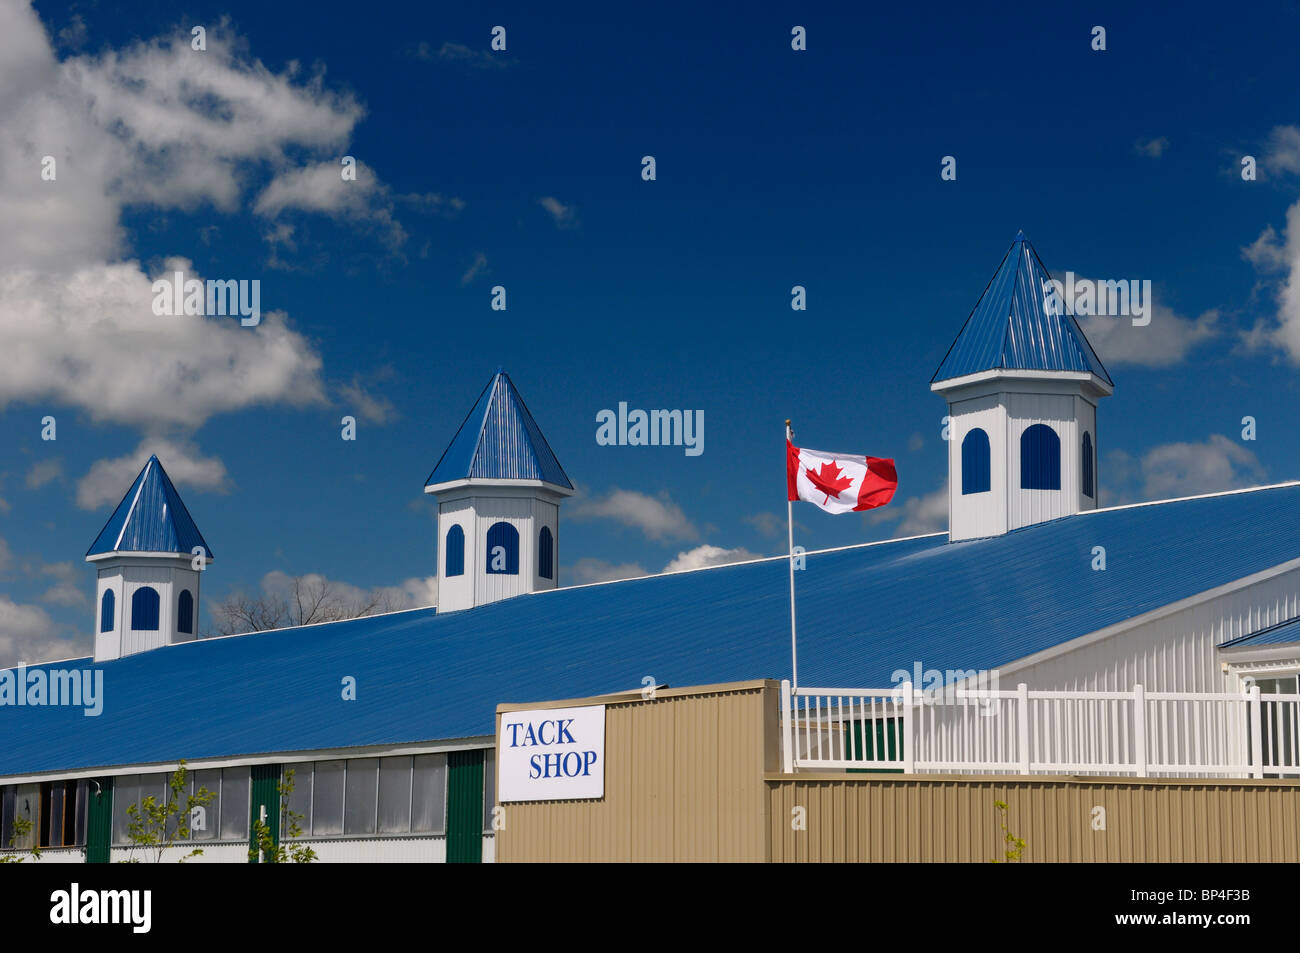 Blue Equestrian barn and horse riding stables with tack shop Ontario with Canadian flag and blue sky - Stock Image